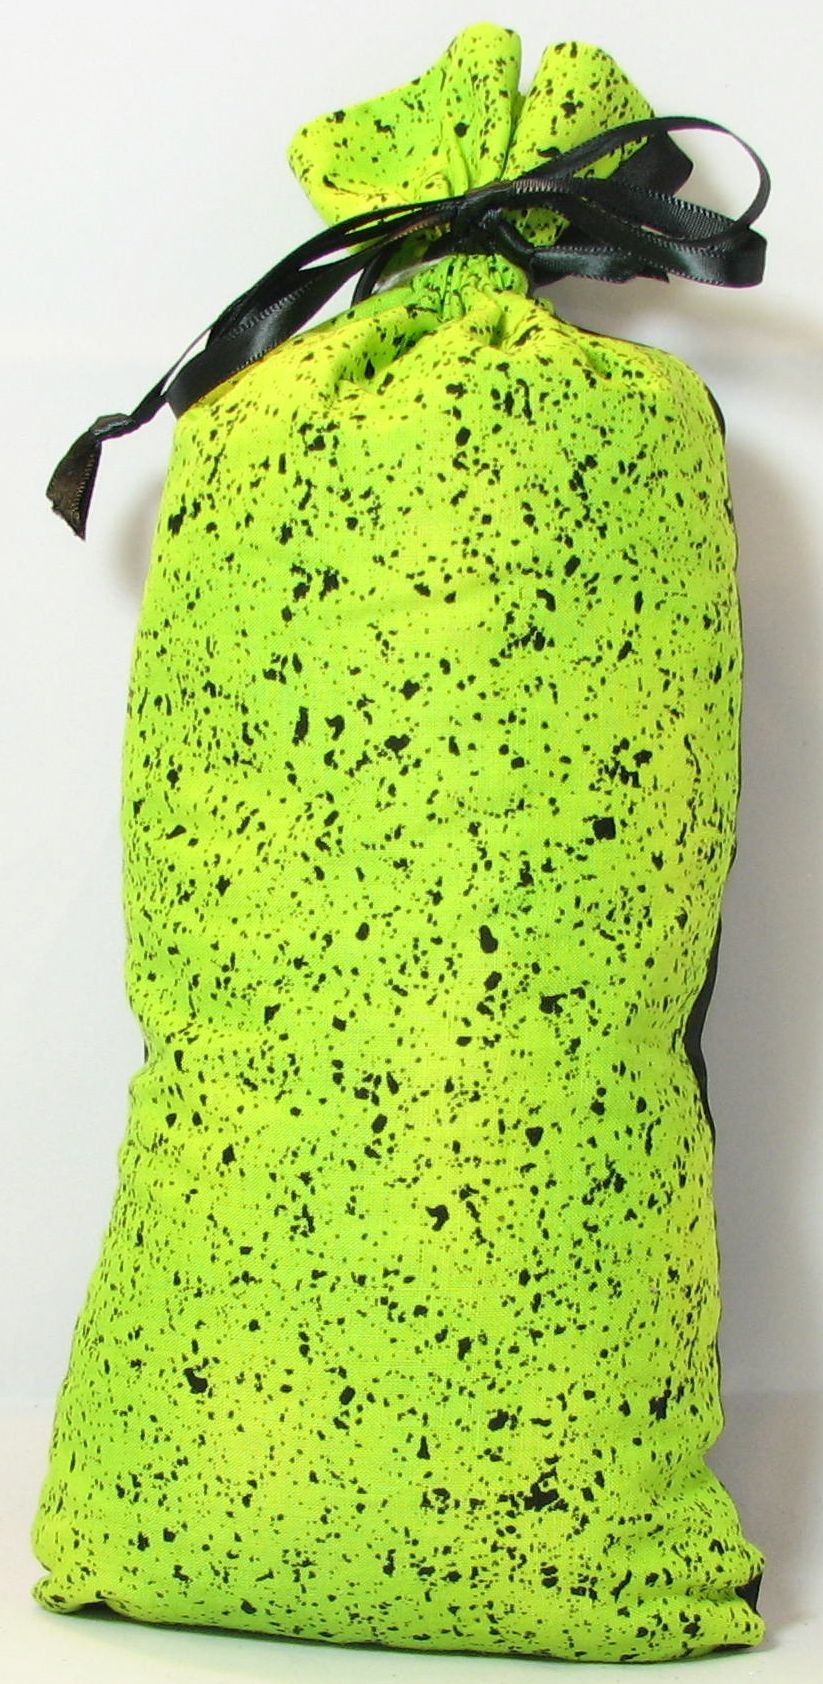 Black with Speckled Neon Green